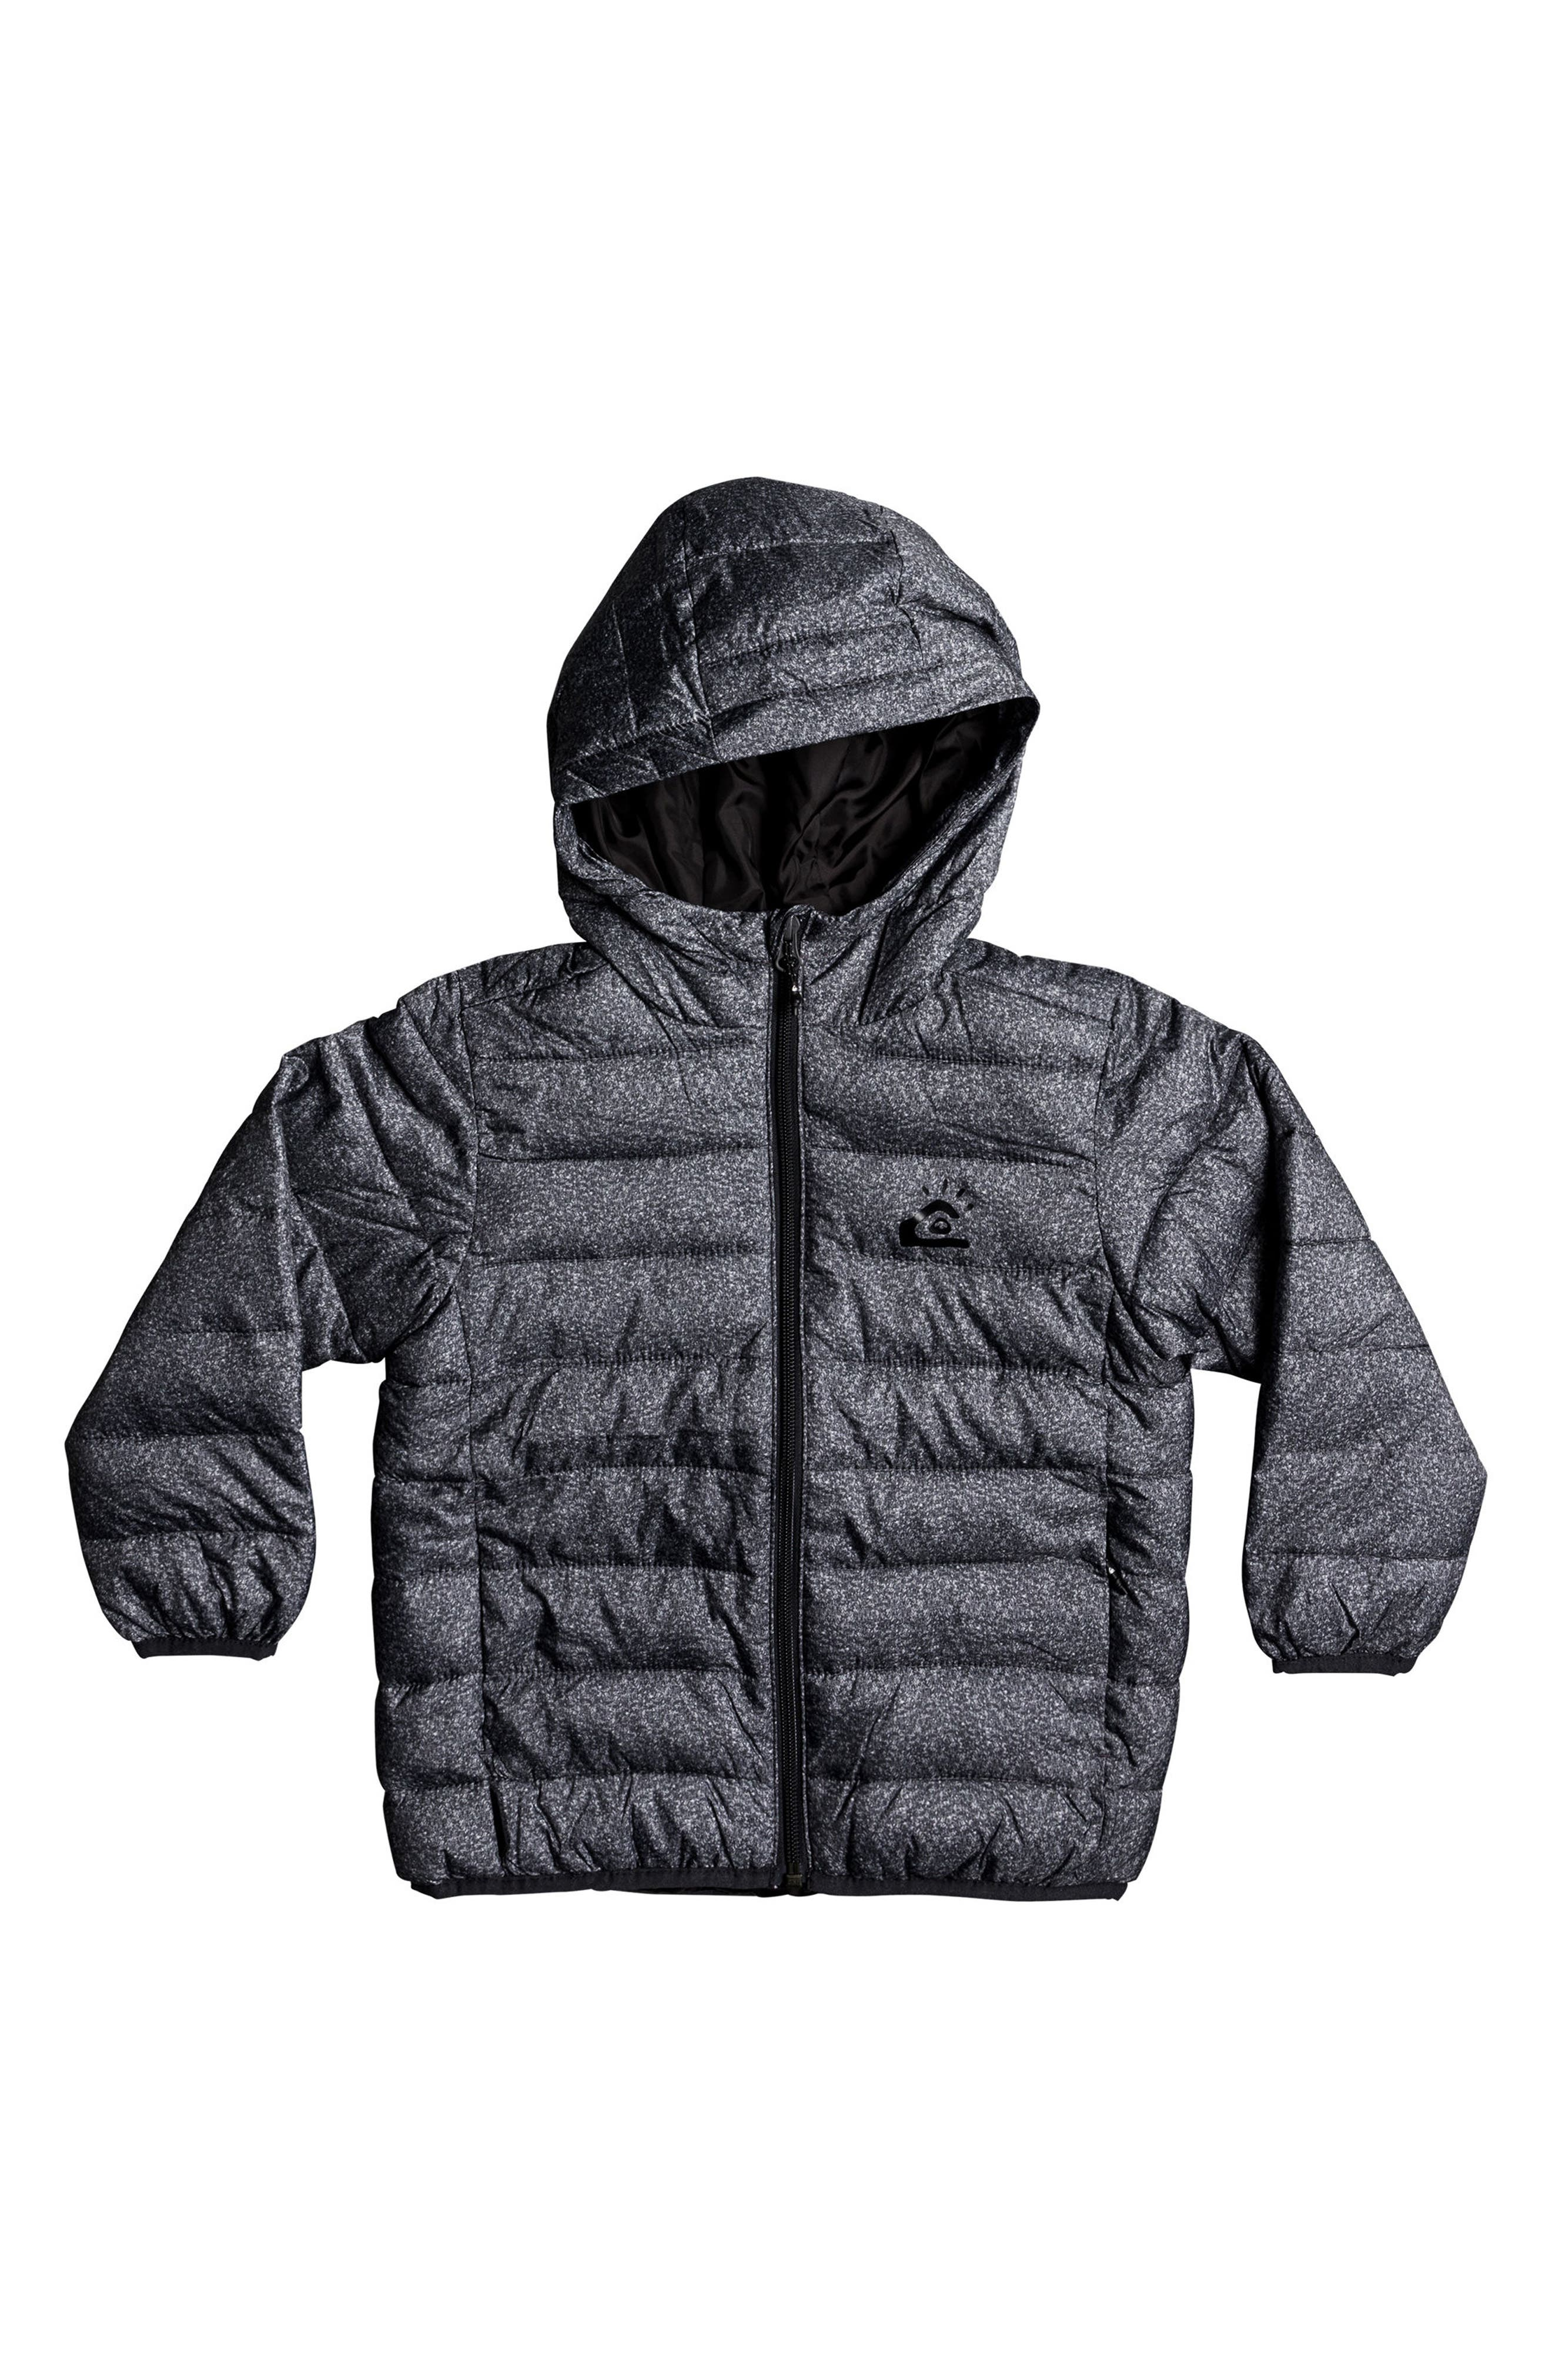 Quicksilver Scaly Water-Resistant Hooded Puffer Jacket,                         Main,                         color, Dark Grey Scaly